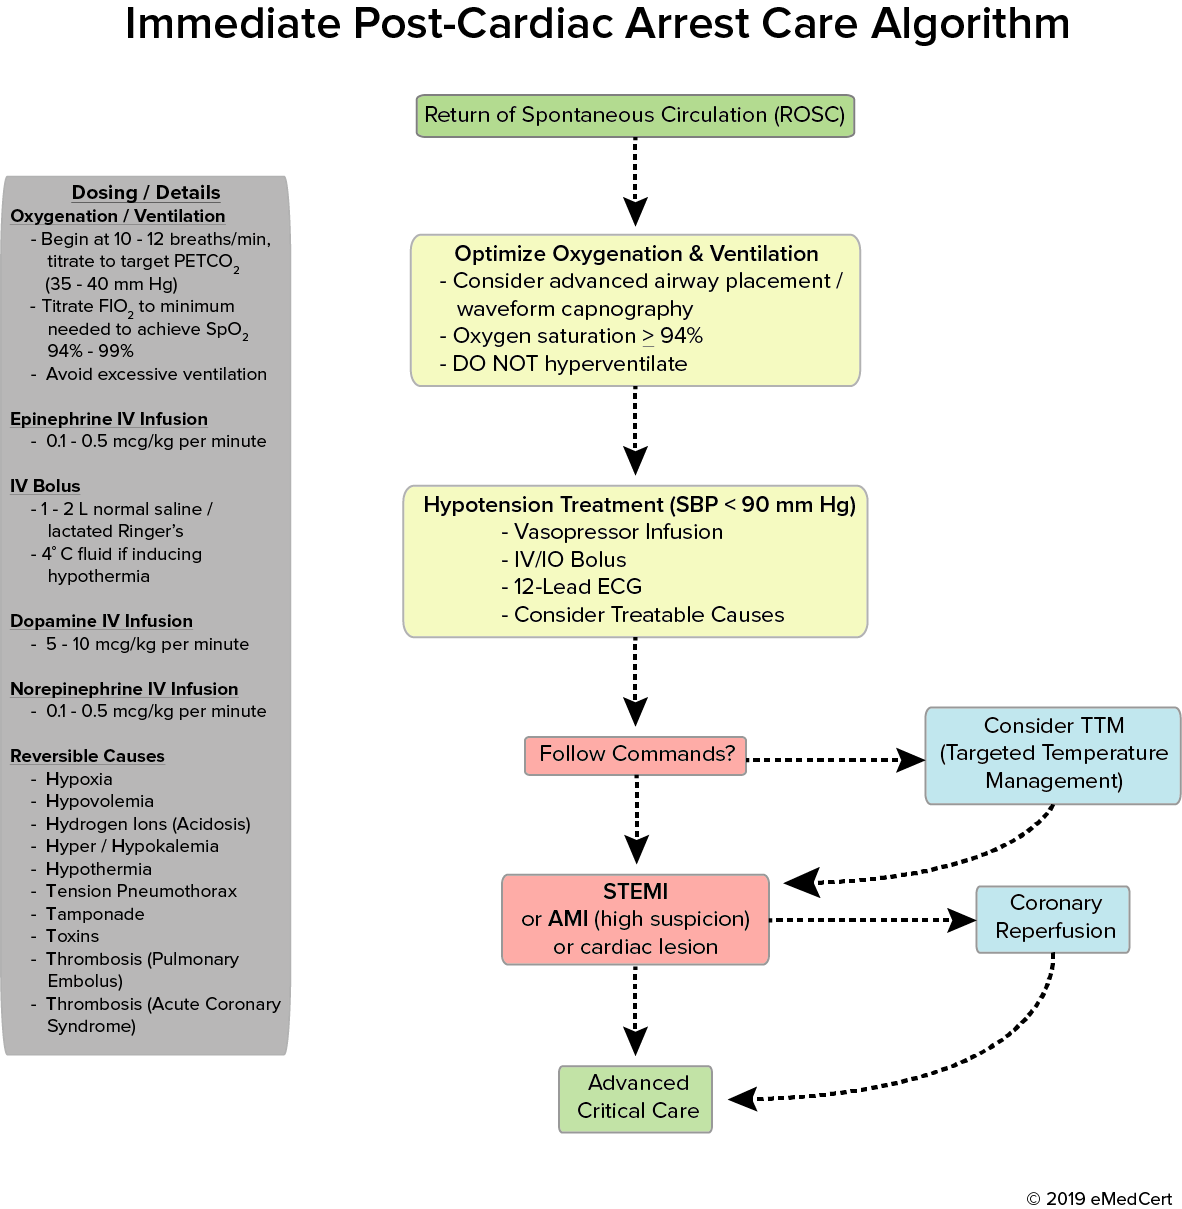 ACLS Algorithms | Immediate Post-Cardiac Arrest Care Algorithm | eMedCert